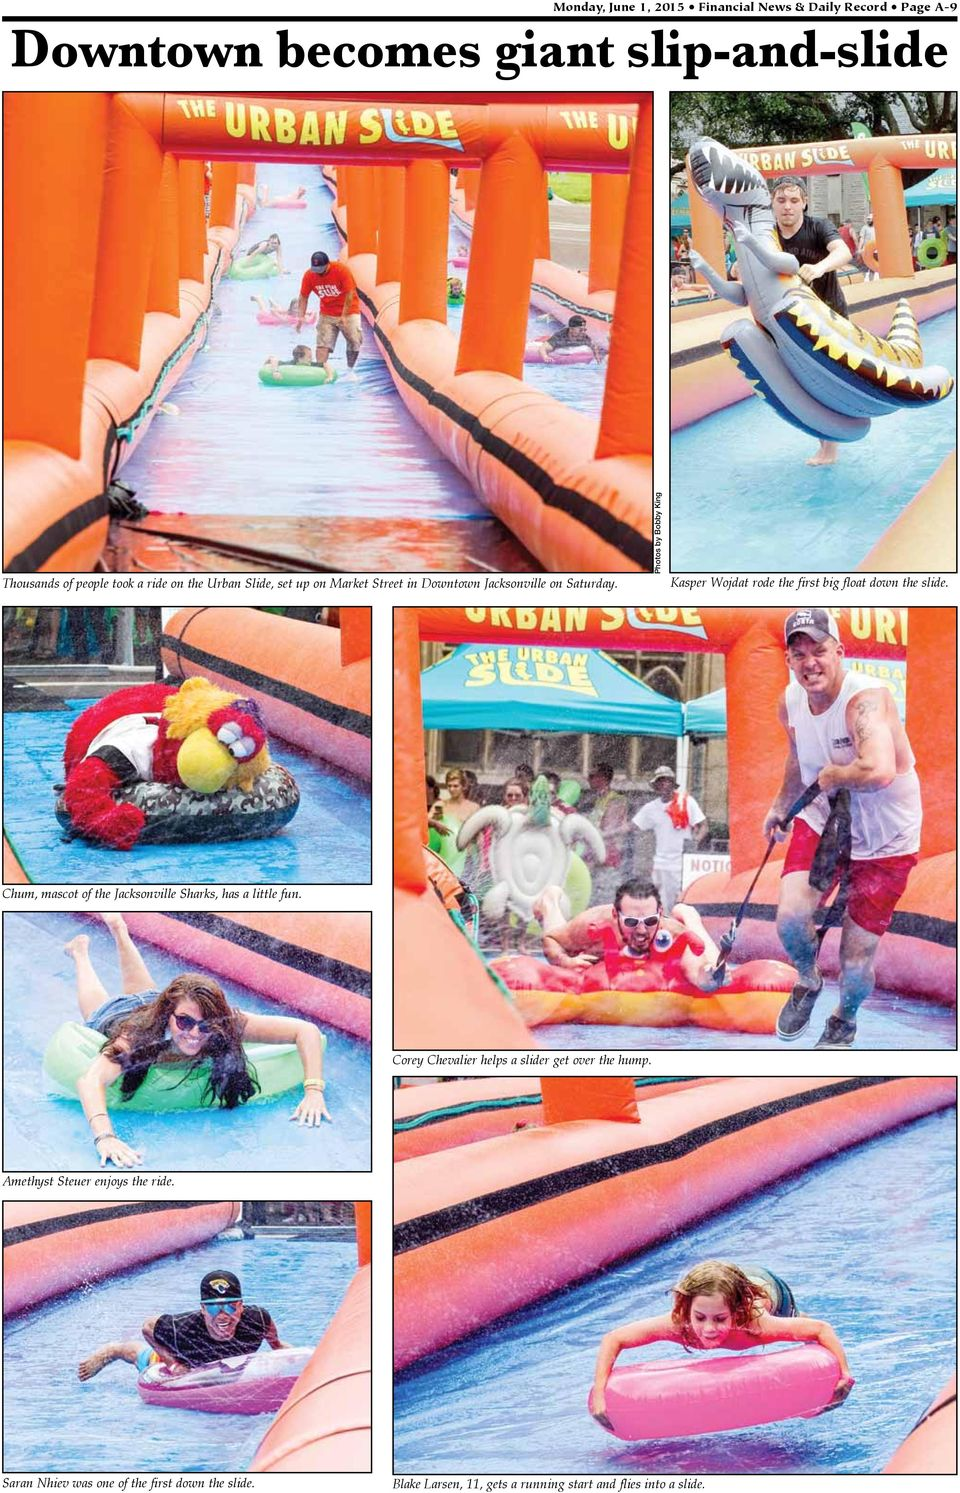 Photos by Bobby King Kasper Wojdat rode the first big float down the slide. Chum, mascot of the Jacksonville Sharks, has a little fun.